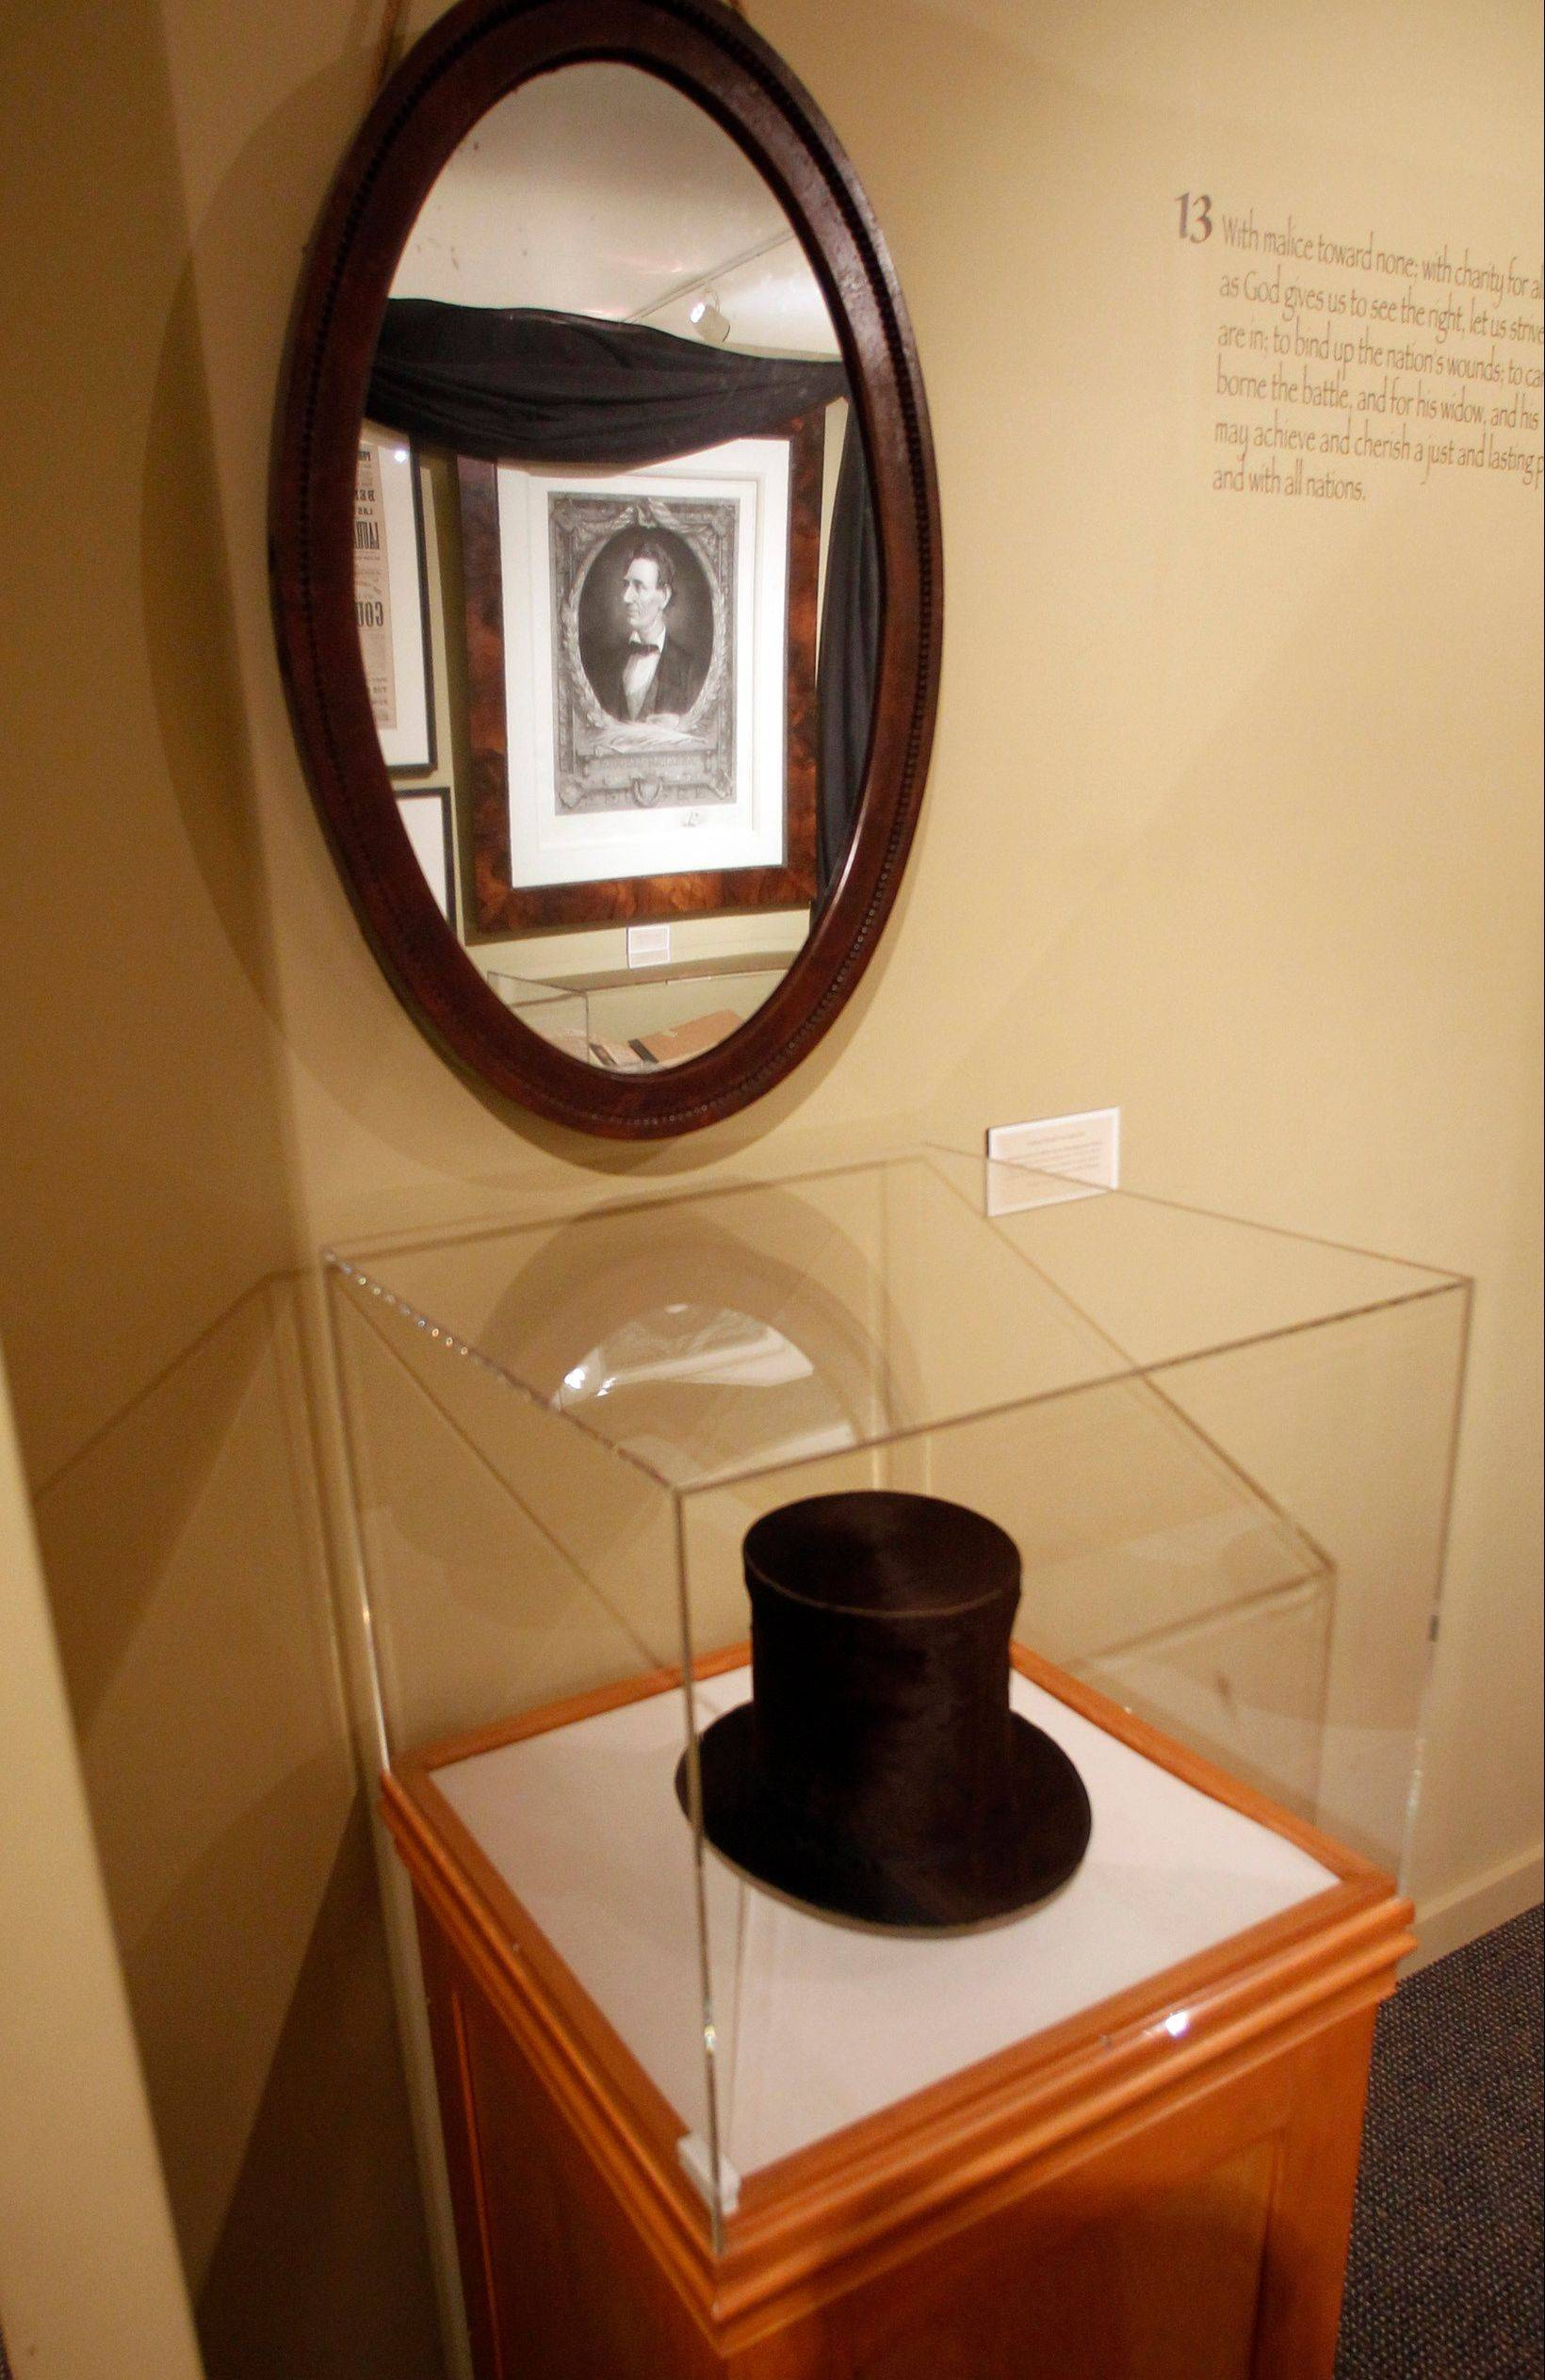 A stove pipe hat and mirror used by Abraham Lincoln is seen at the Robert Todd Lincoln mansion in Manchester, Vt.